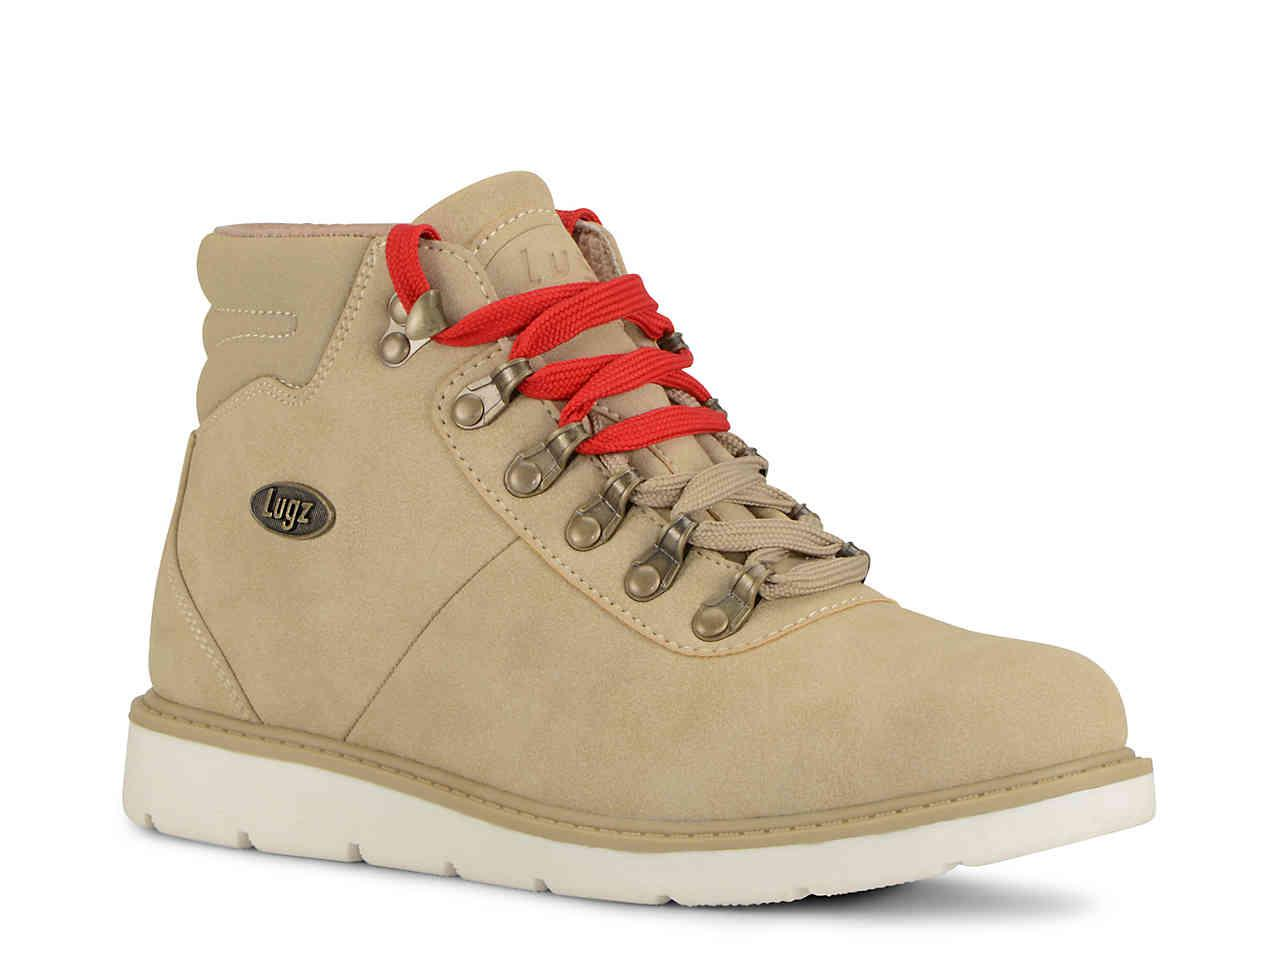 b675682f86bc Lugz - Brown Theta Wedge Bootie - Lyst. View fullscreen